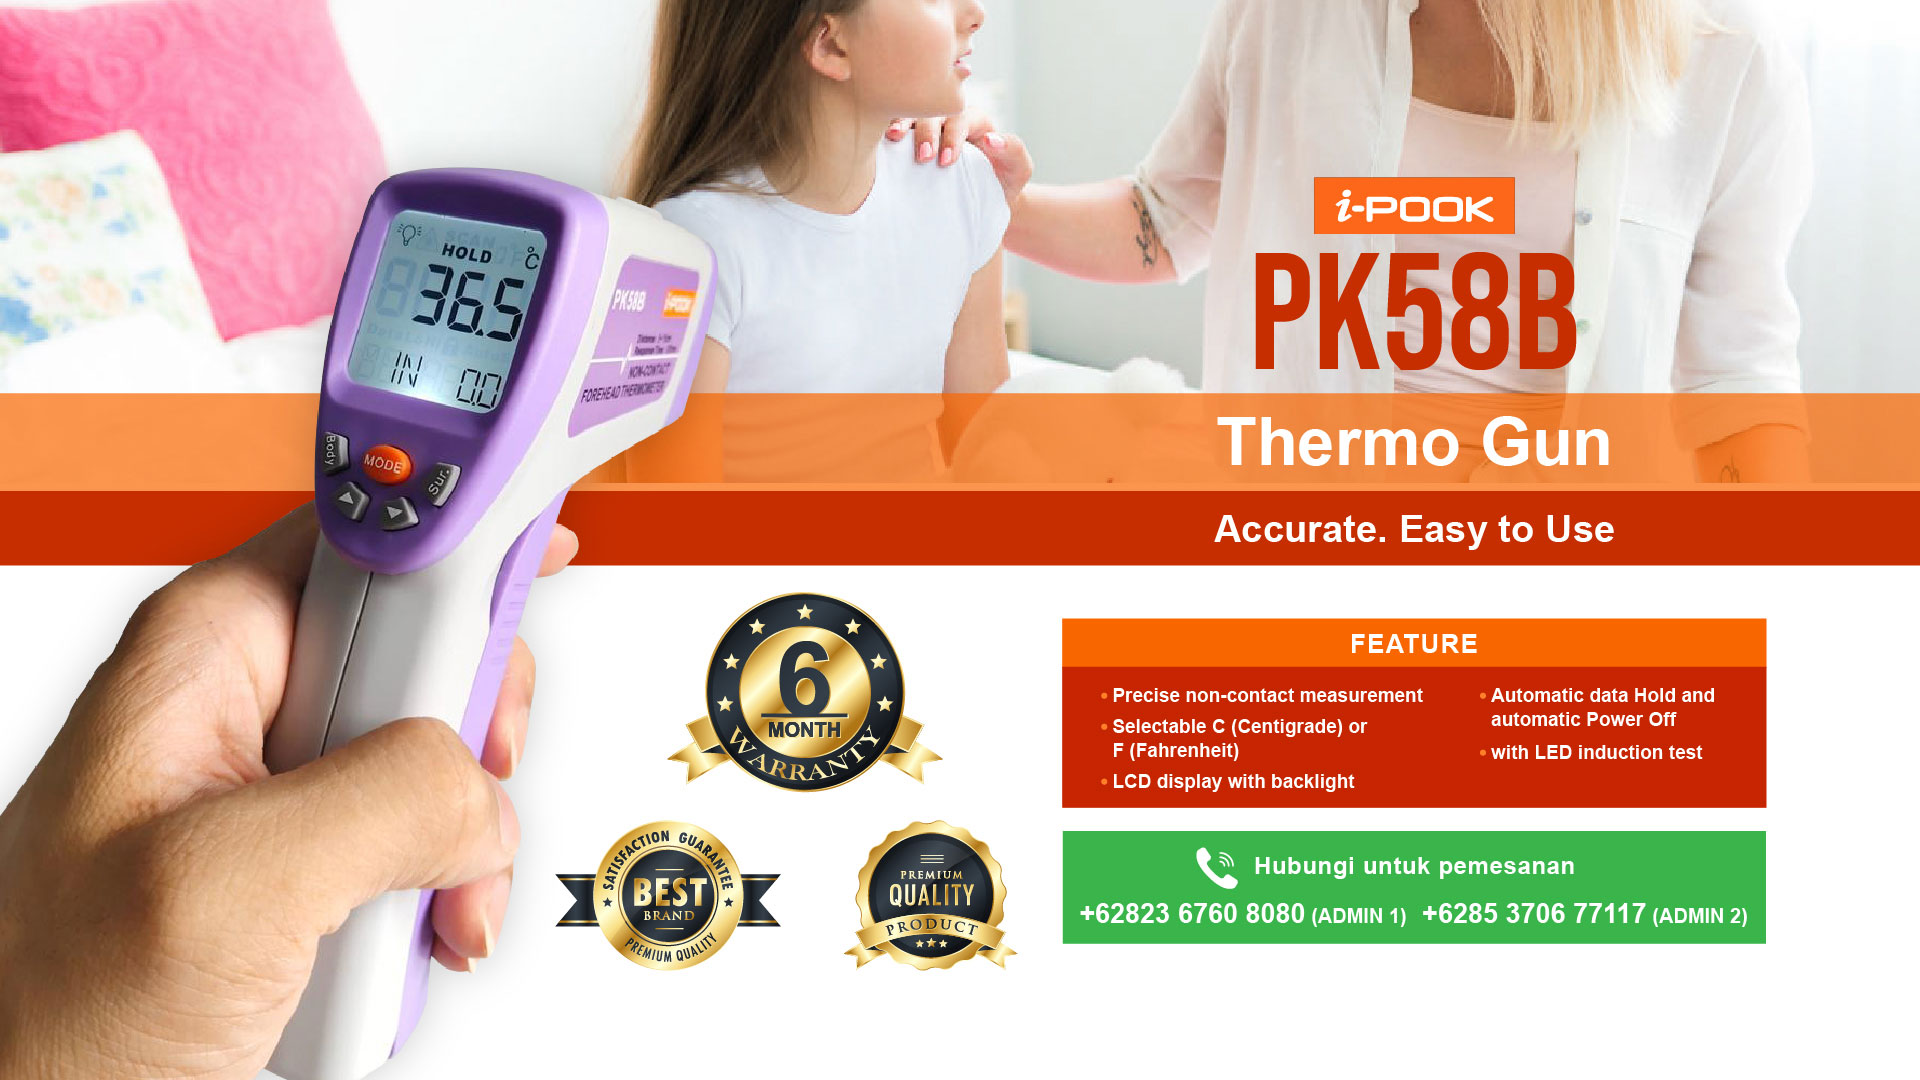 altr-ultimate-ecommerce_gpower_wdd_home_graphic_main-slider_2200426-product-intro-ipook-pk58B-thermo-gun.jpg